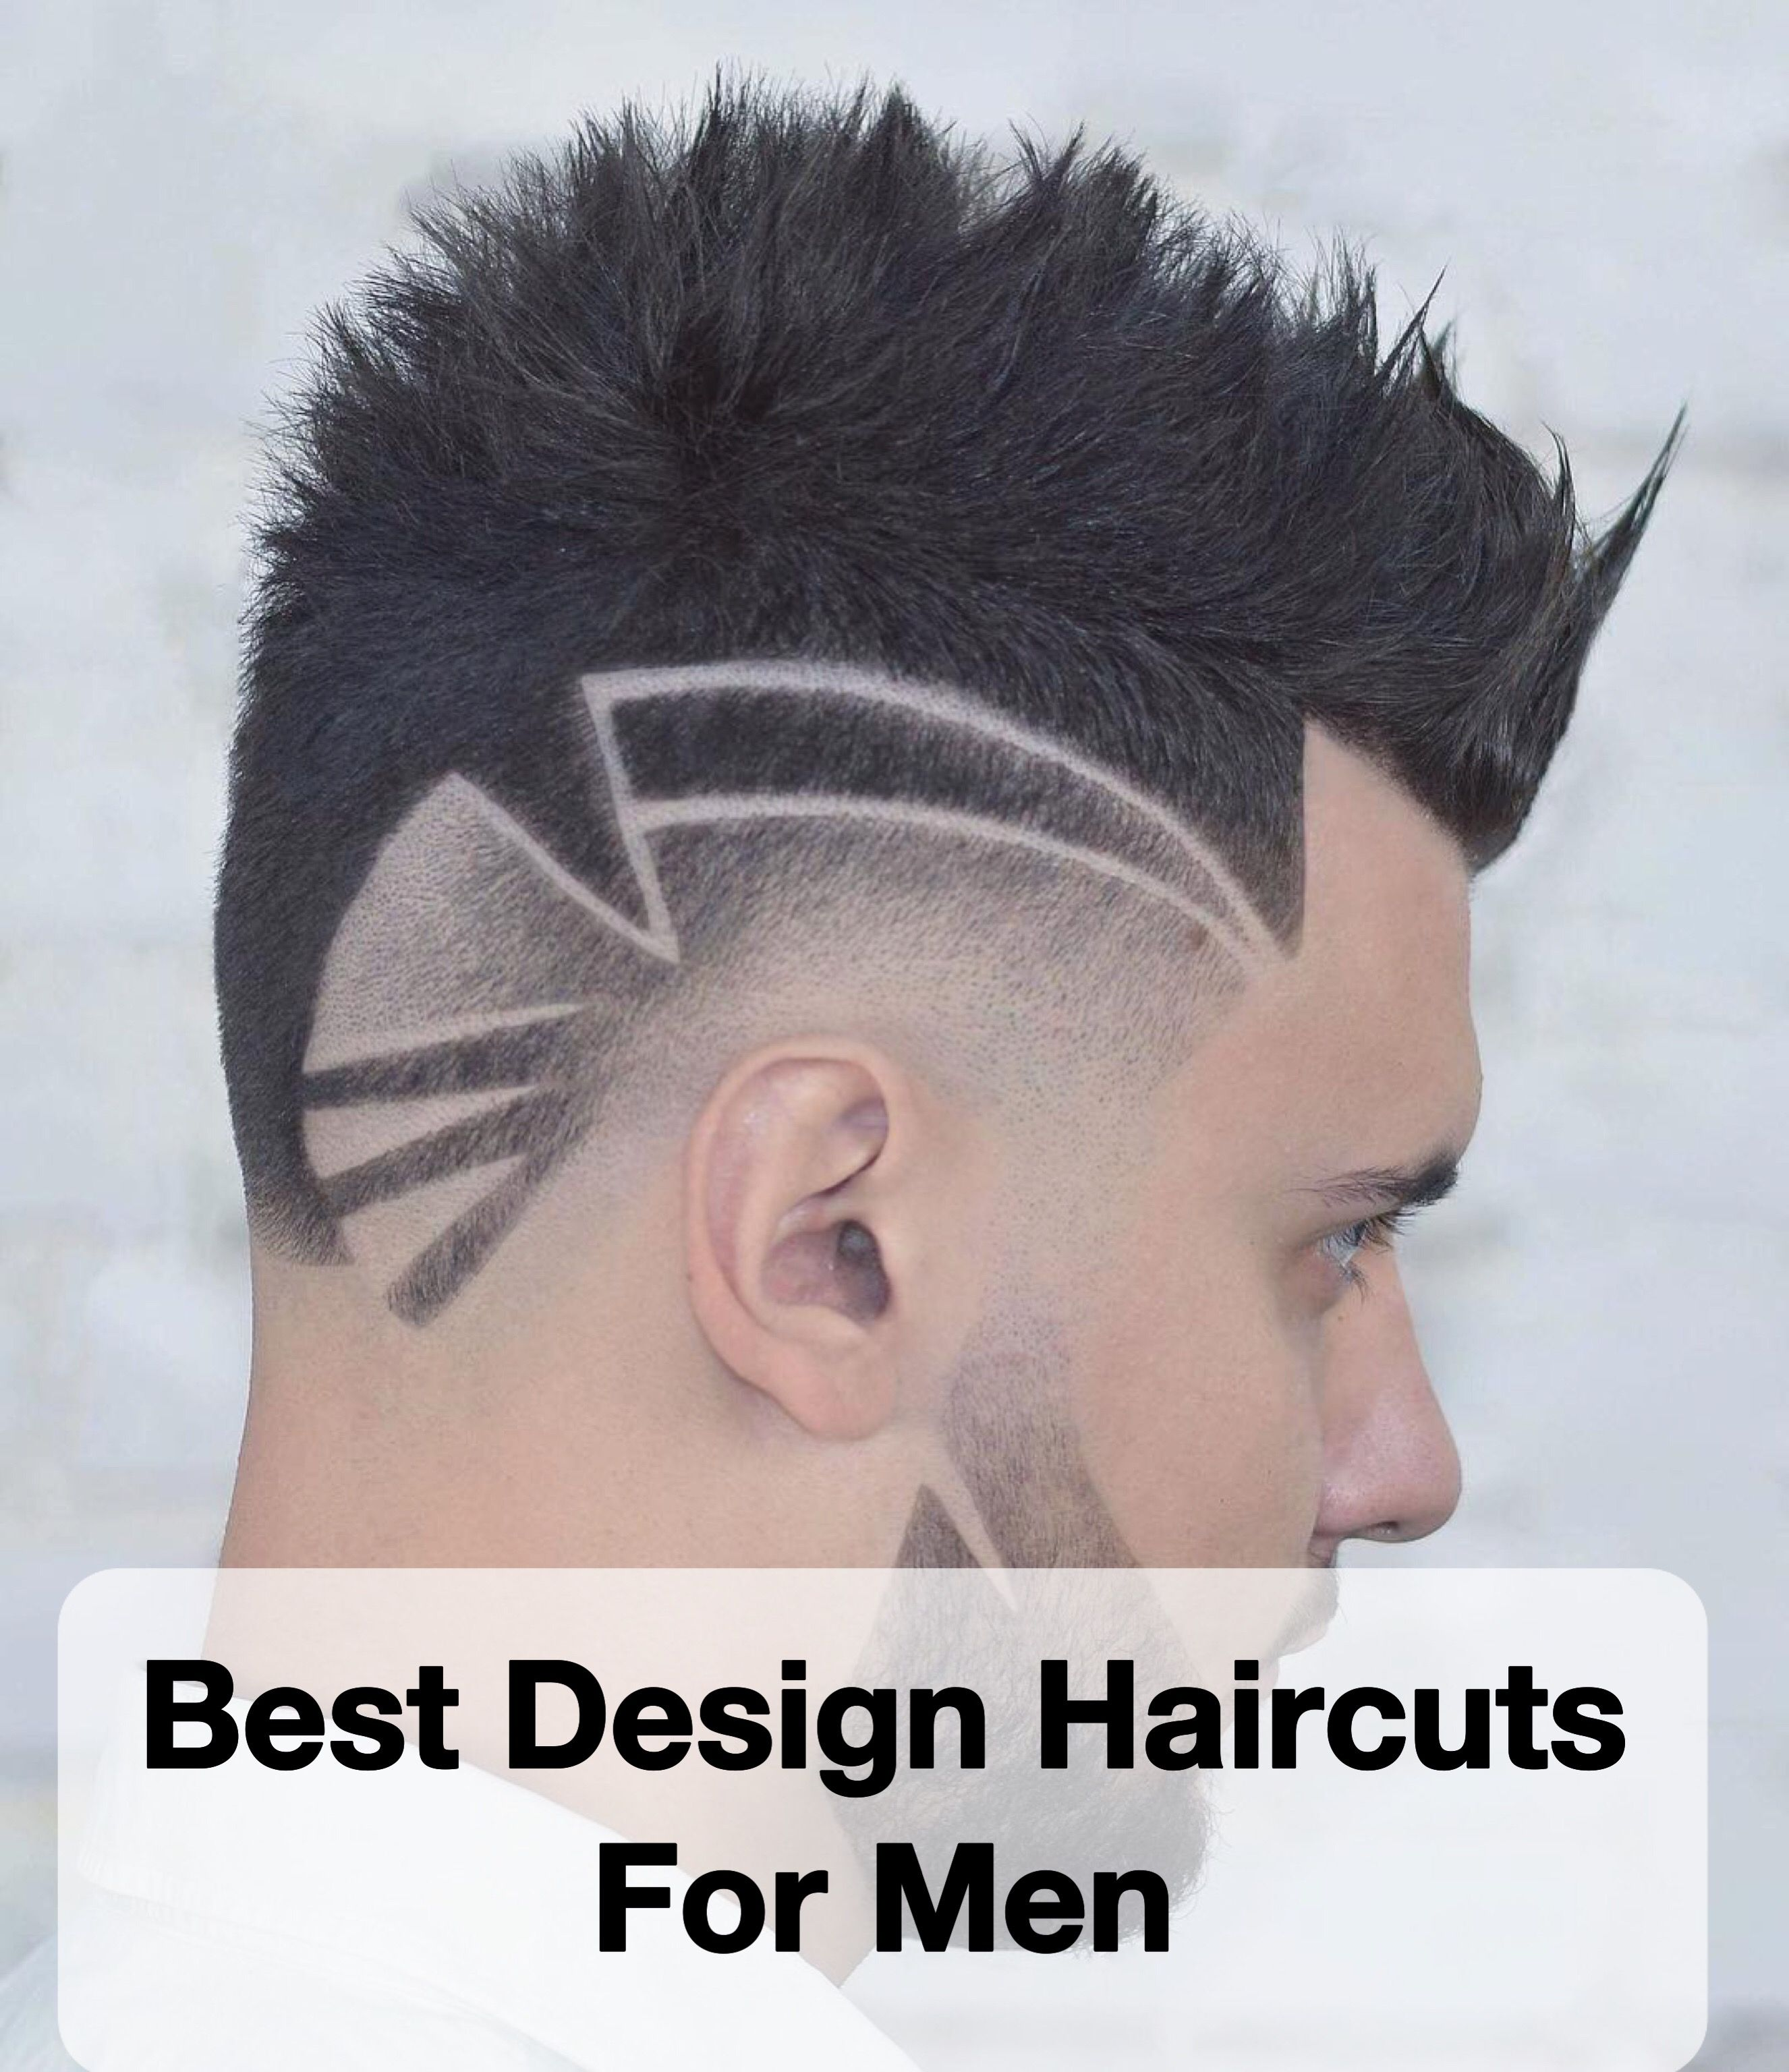 Haircuts for men with designs  awesome design haircuts for men  cuttin up  pinterest  hair